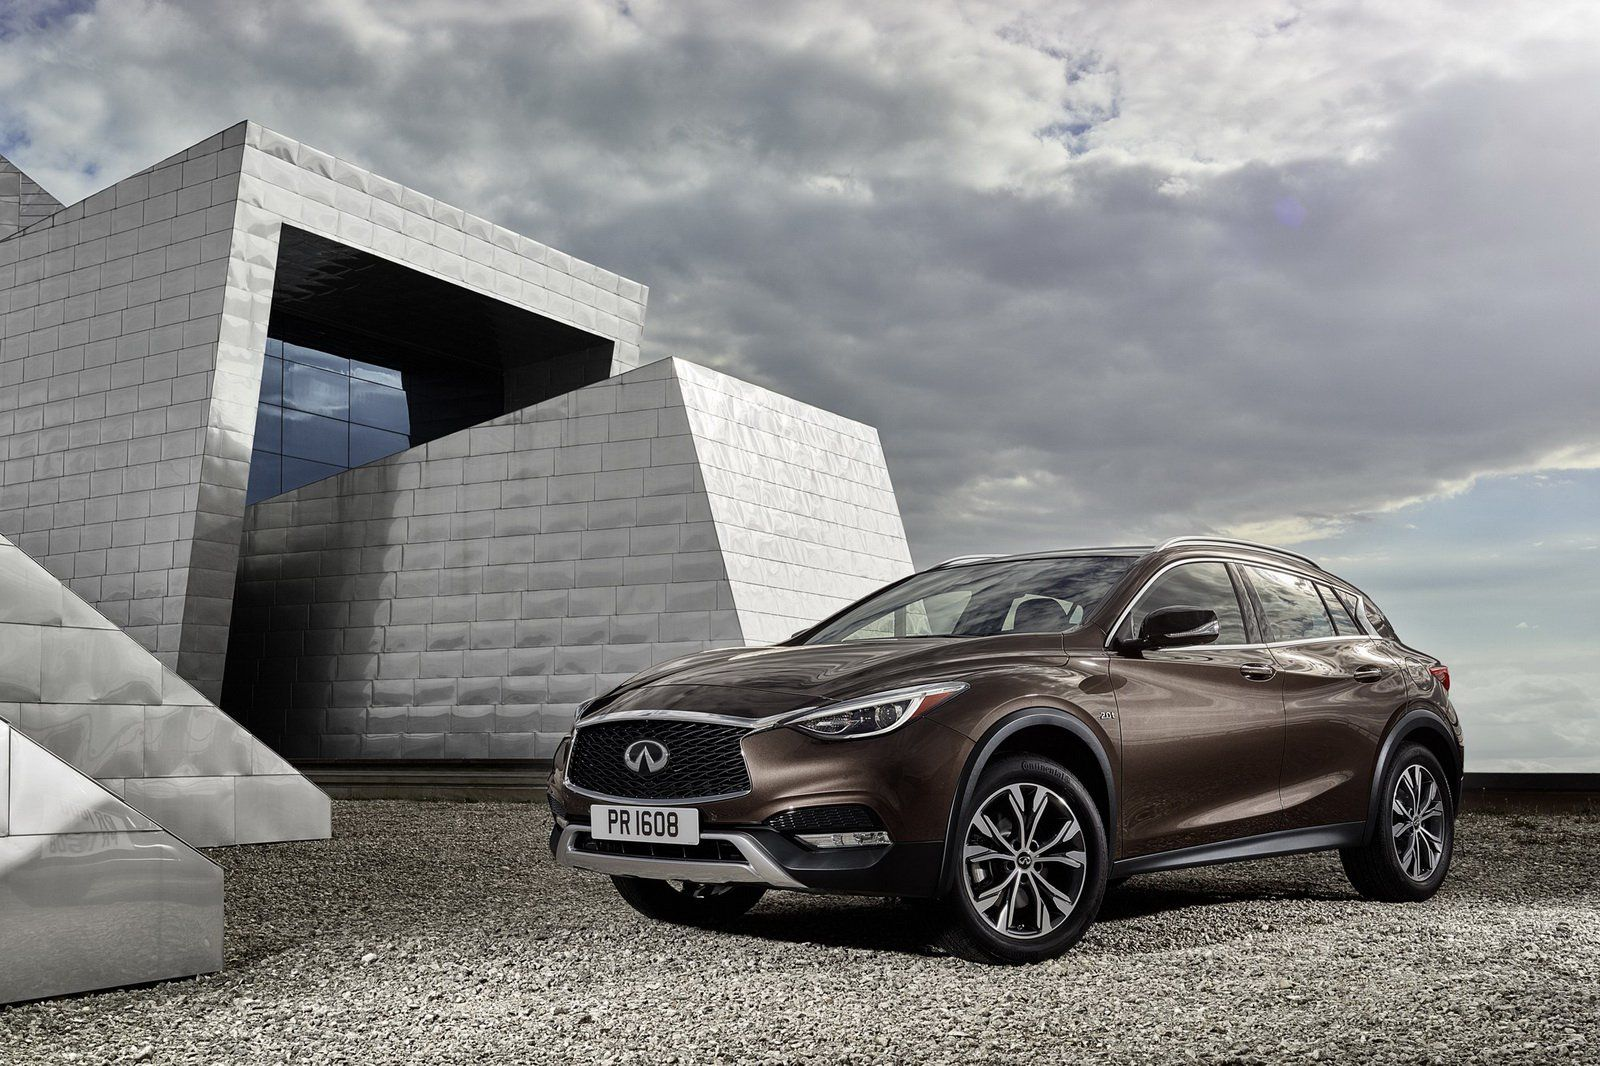 Infiniti And Mercedes Cancel Plans For Jointly Developed Luxury Compact Car Compact Luxury Cars Infiniti Compact Cars